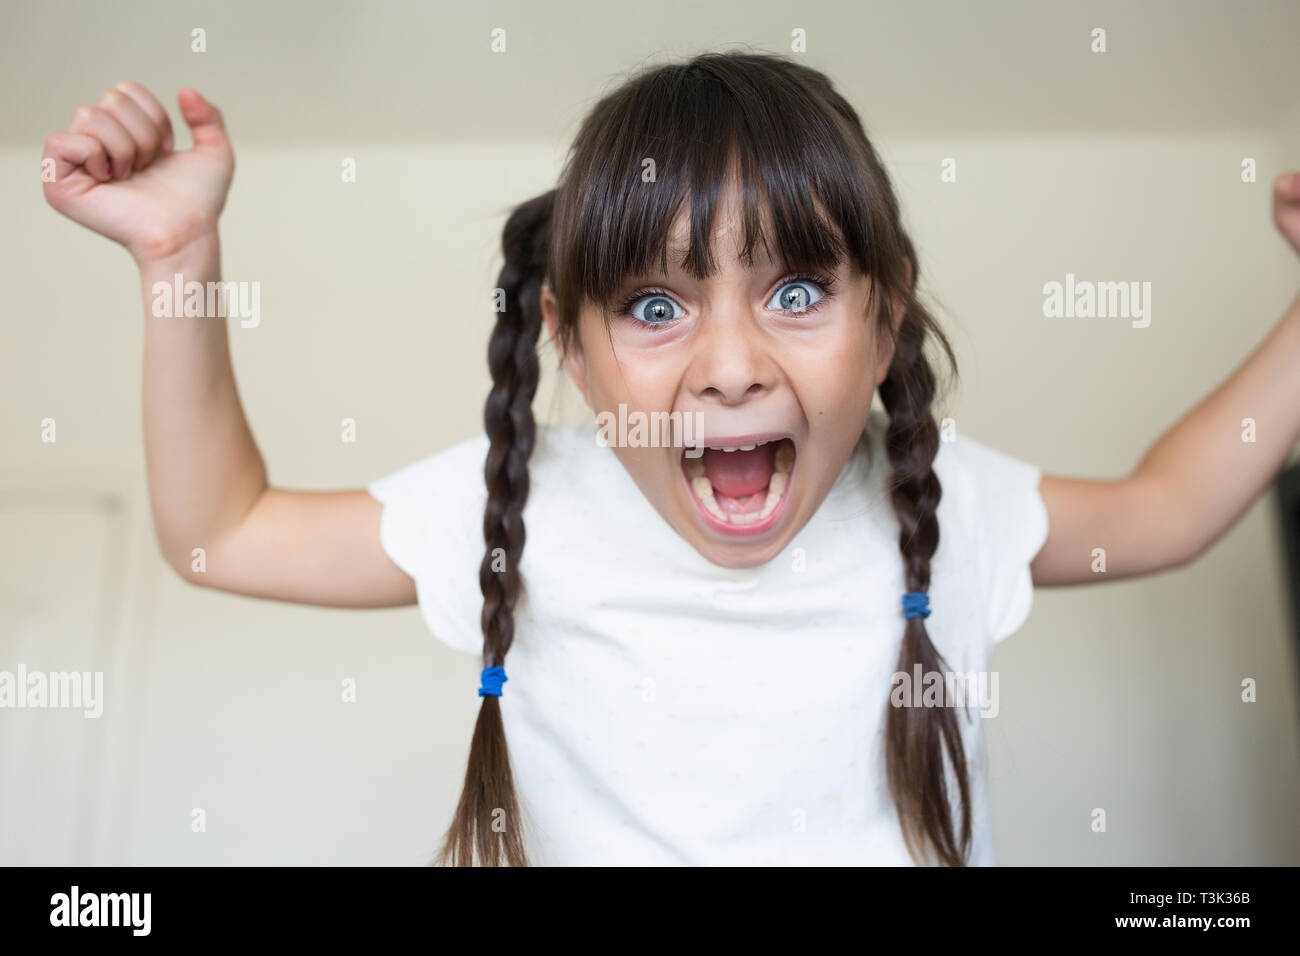 Angry girl is screaming towards the camera. She is mad. - Stock Image